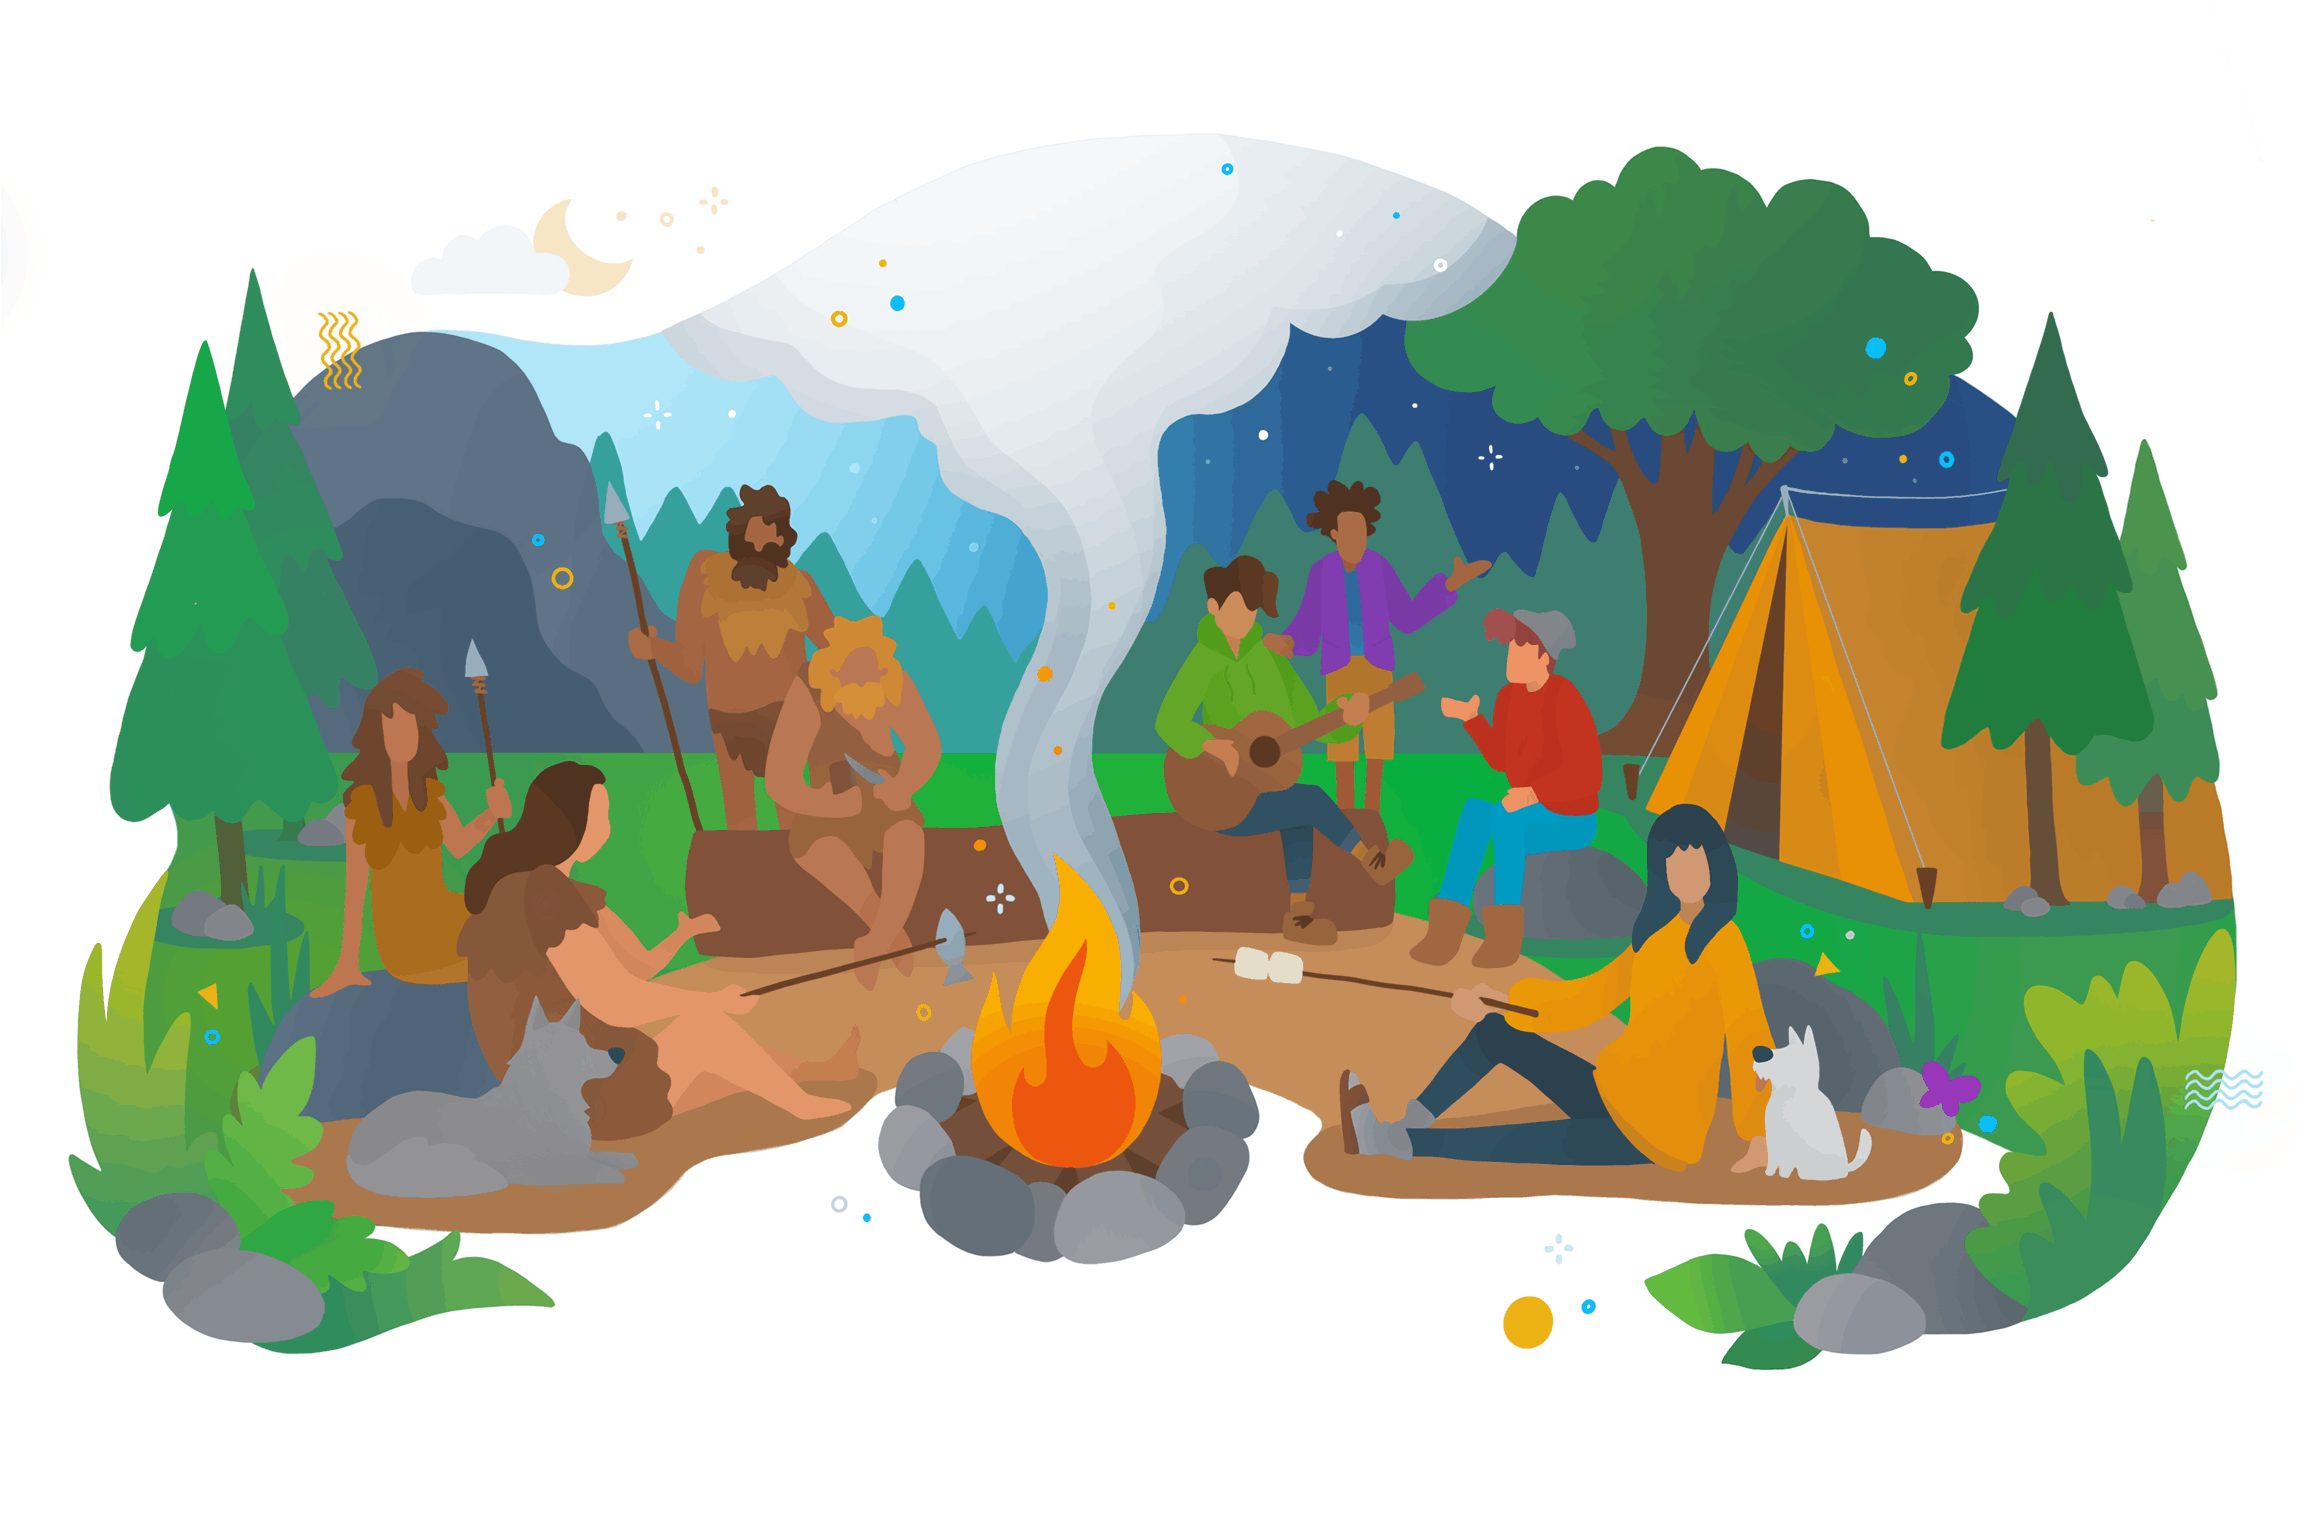 A colourful illustration of a campsite where modern people and cave man have gathered over a campfire.